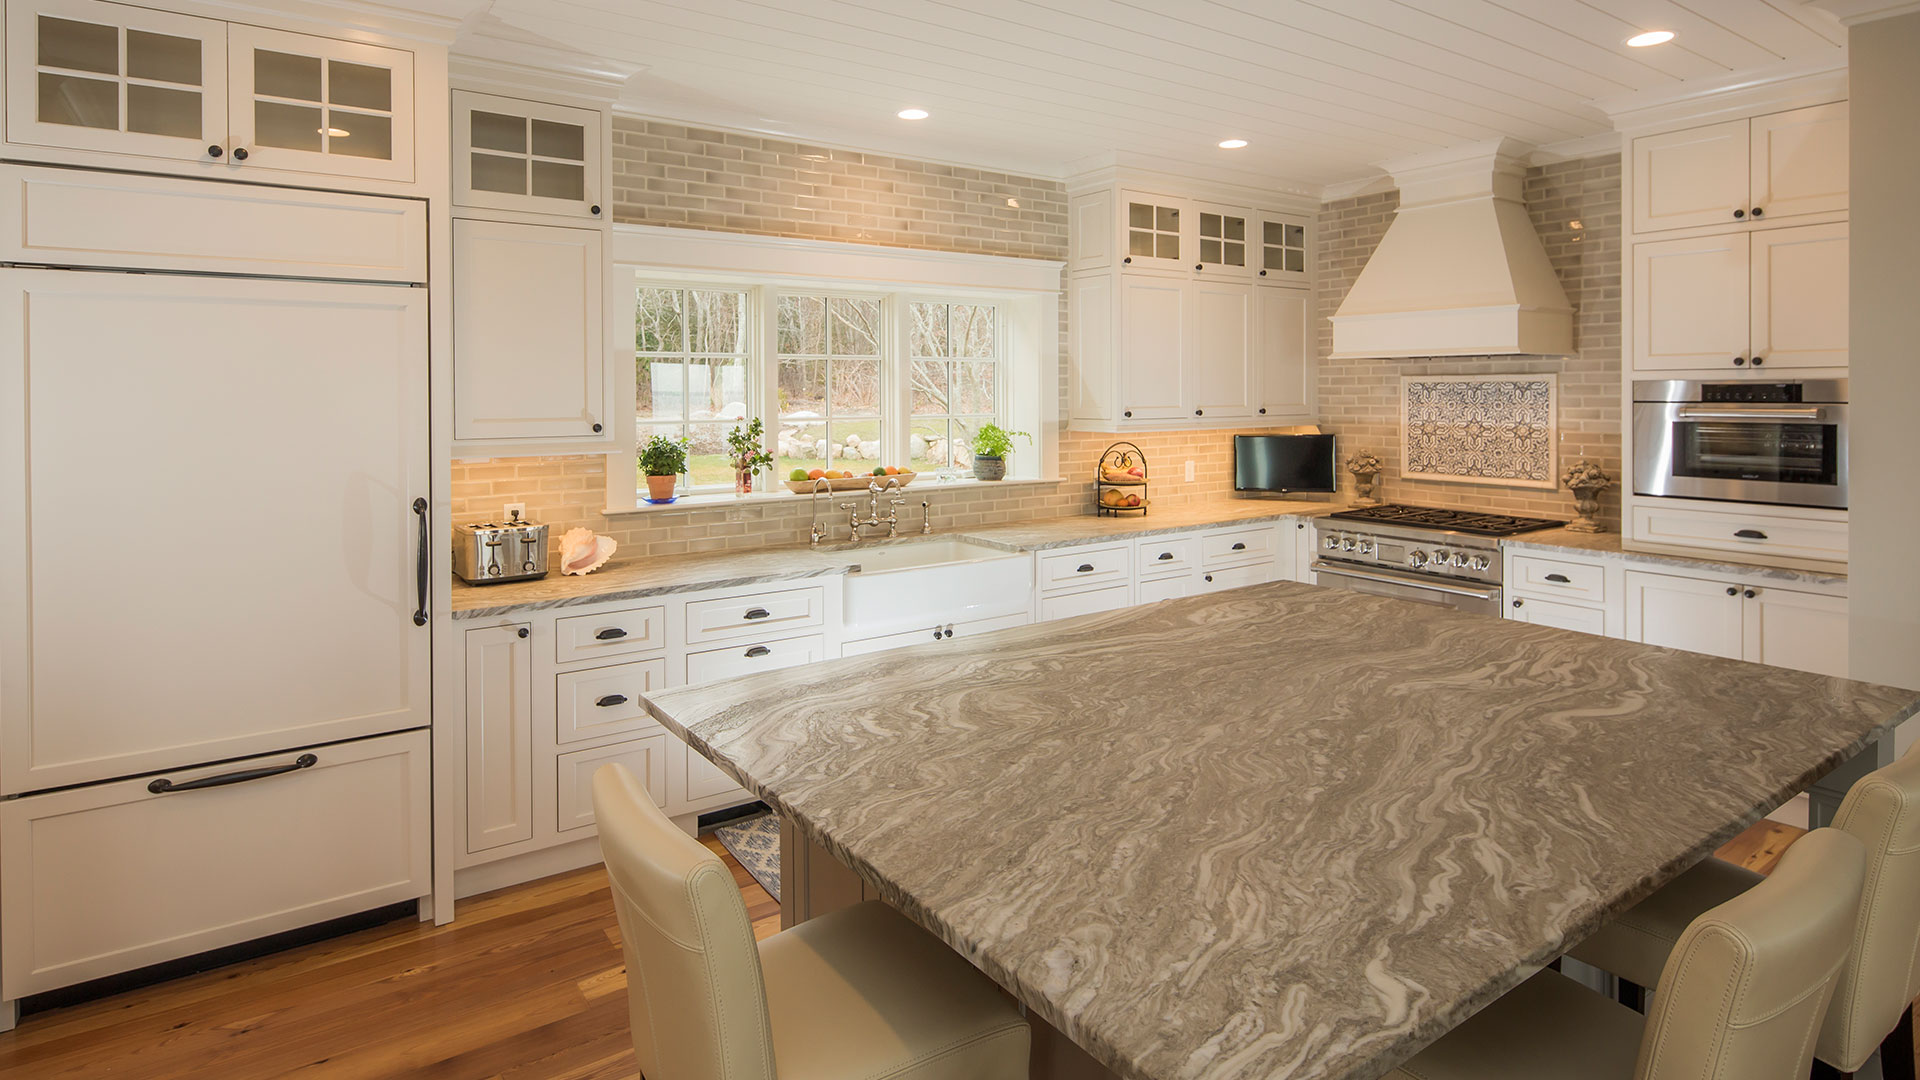 Cape Cod Kitchen Cabinets Refacing And Design Services